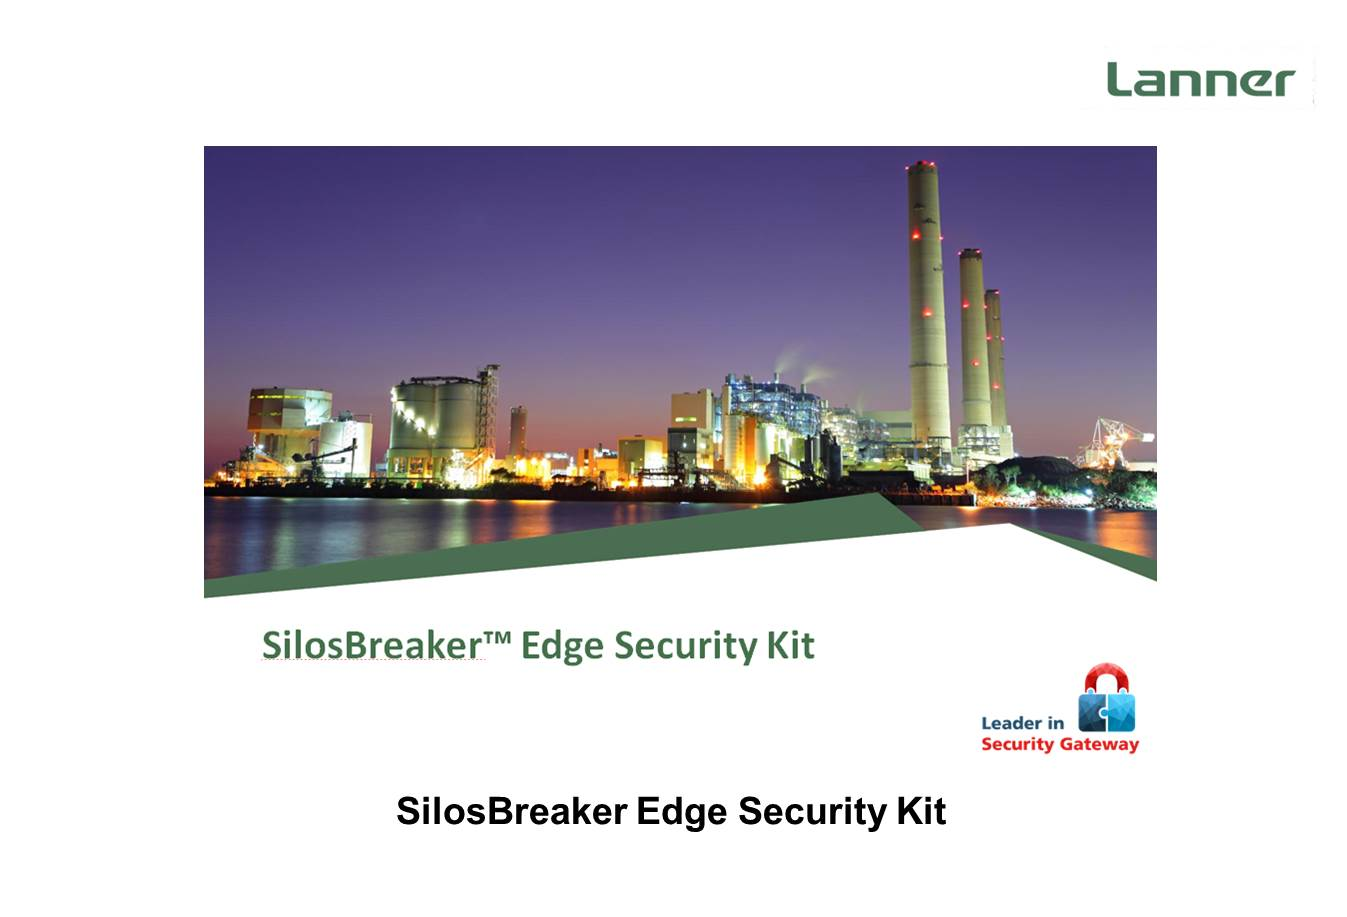 Lanner Silosbreaker Edge Security Kit